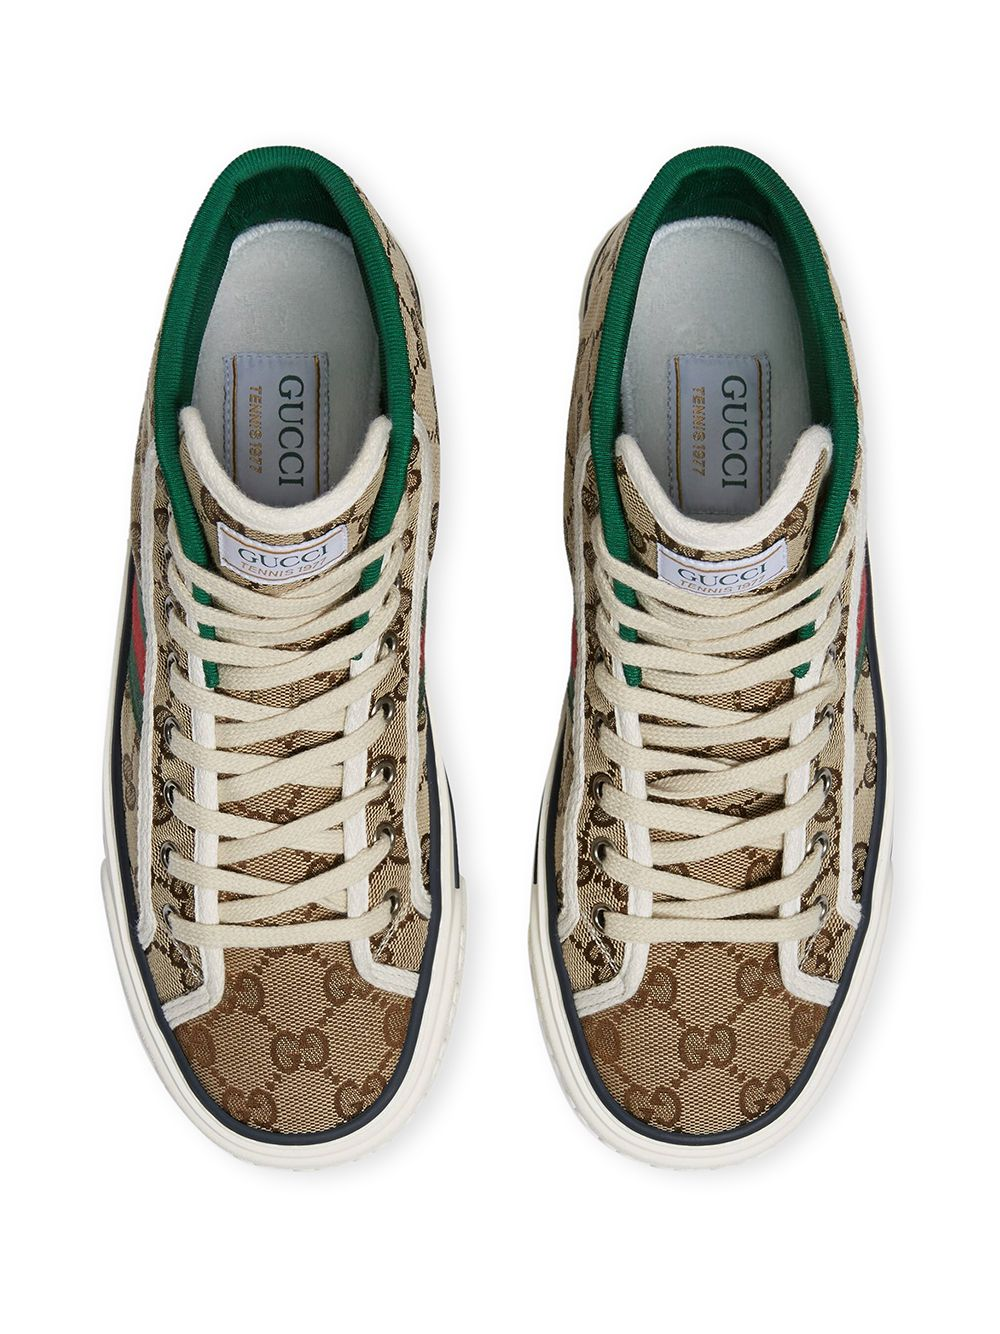 Gucci Tennis 1977 High-top Sneakers